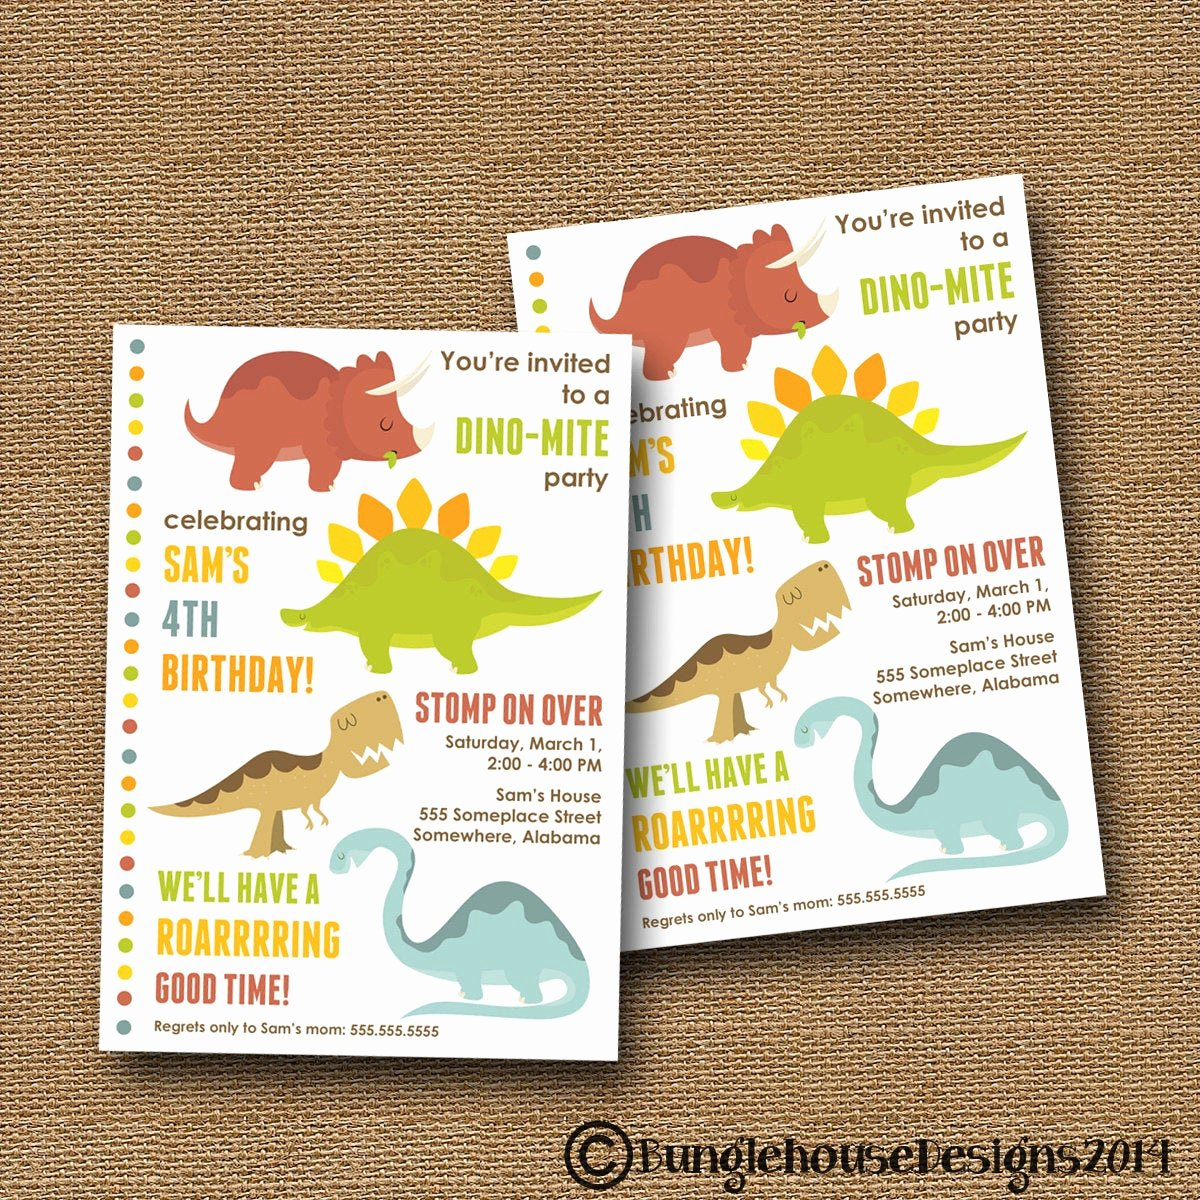 Dinosaur Birthday Invitations Free Elegant Dinosaur Birthday Invitation Cute Dinosaur Invitation Boys